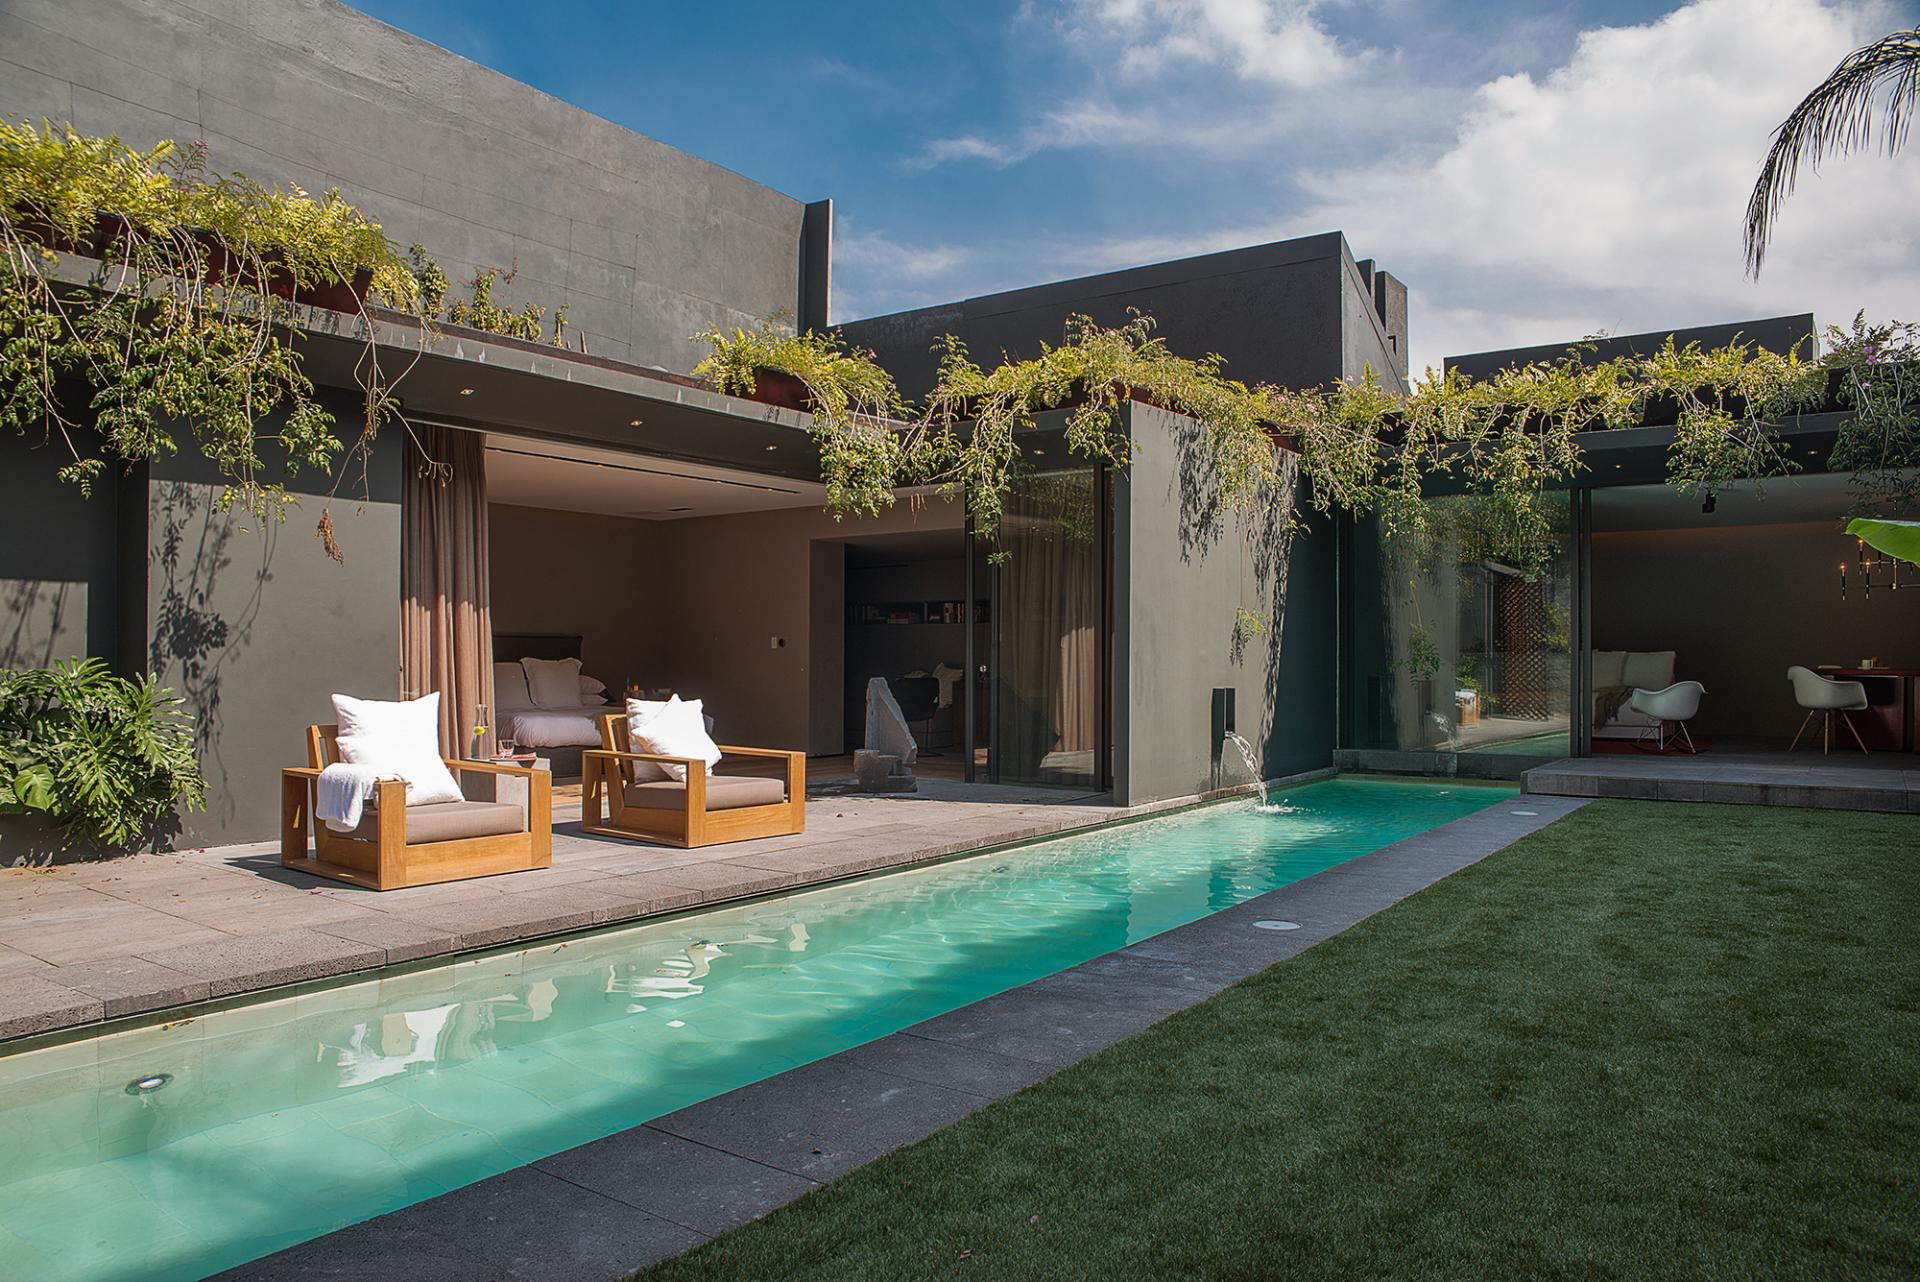 Mexico city restoration adds luxury comforts to 1970s design for Pool design 1970